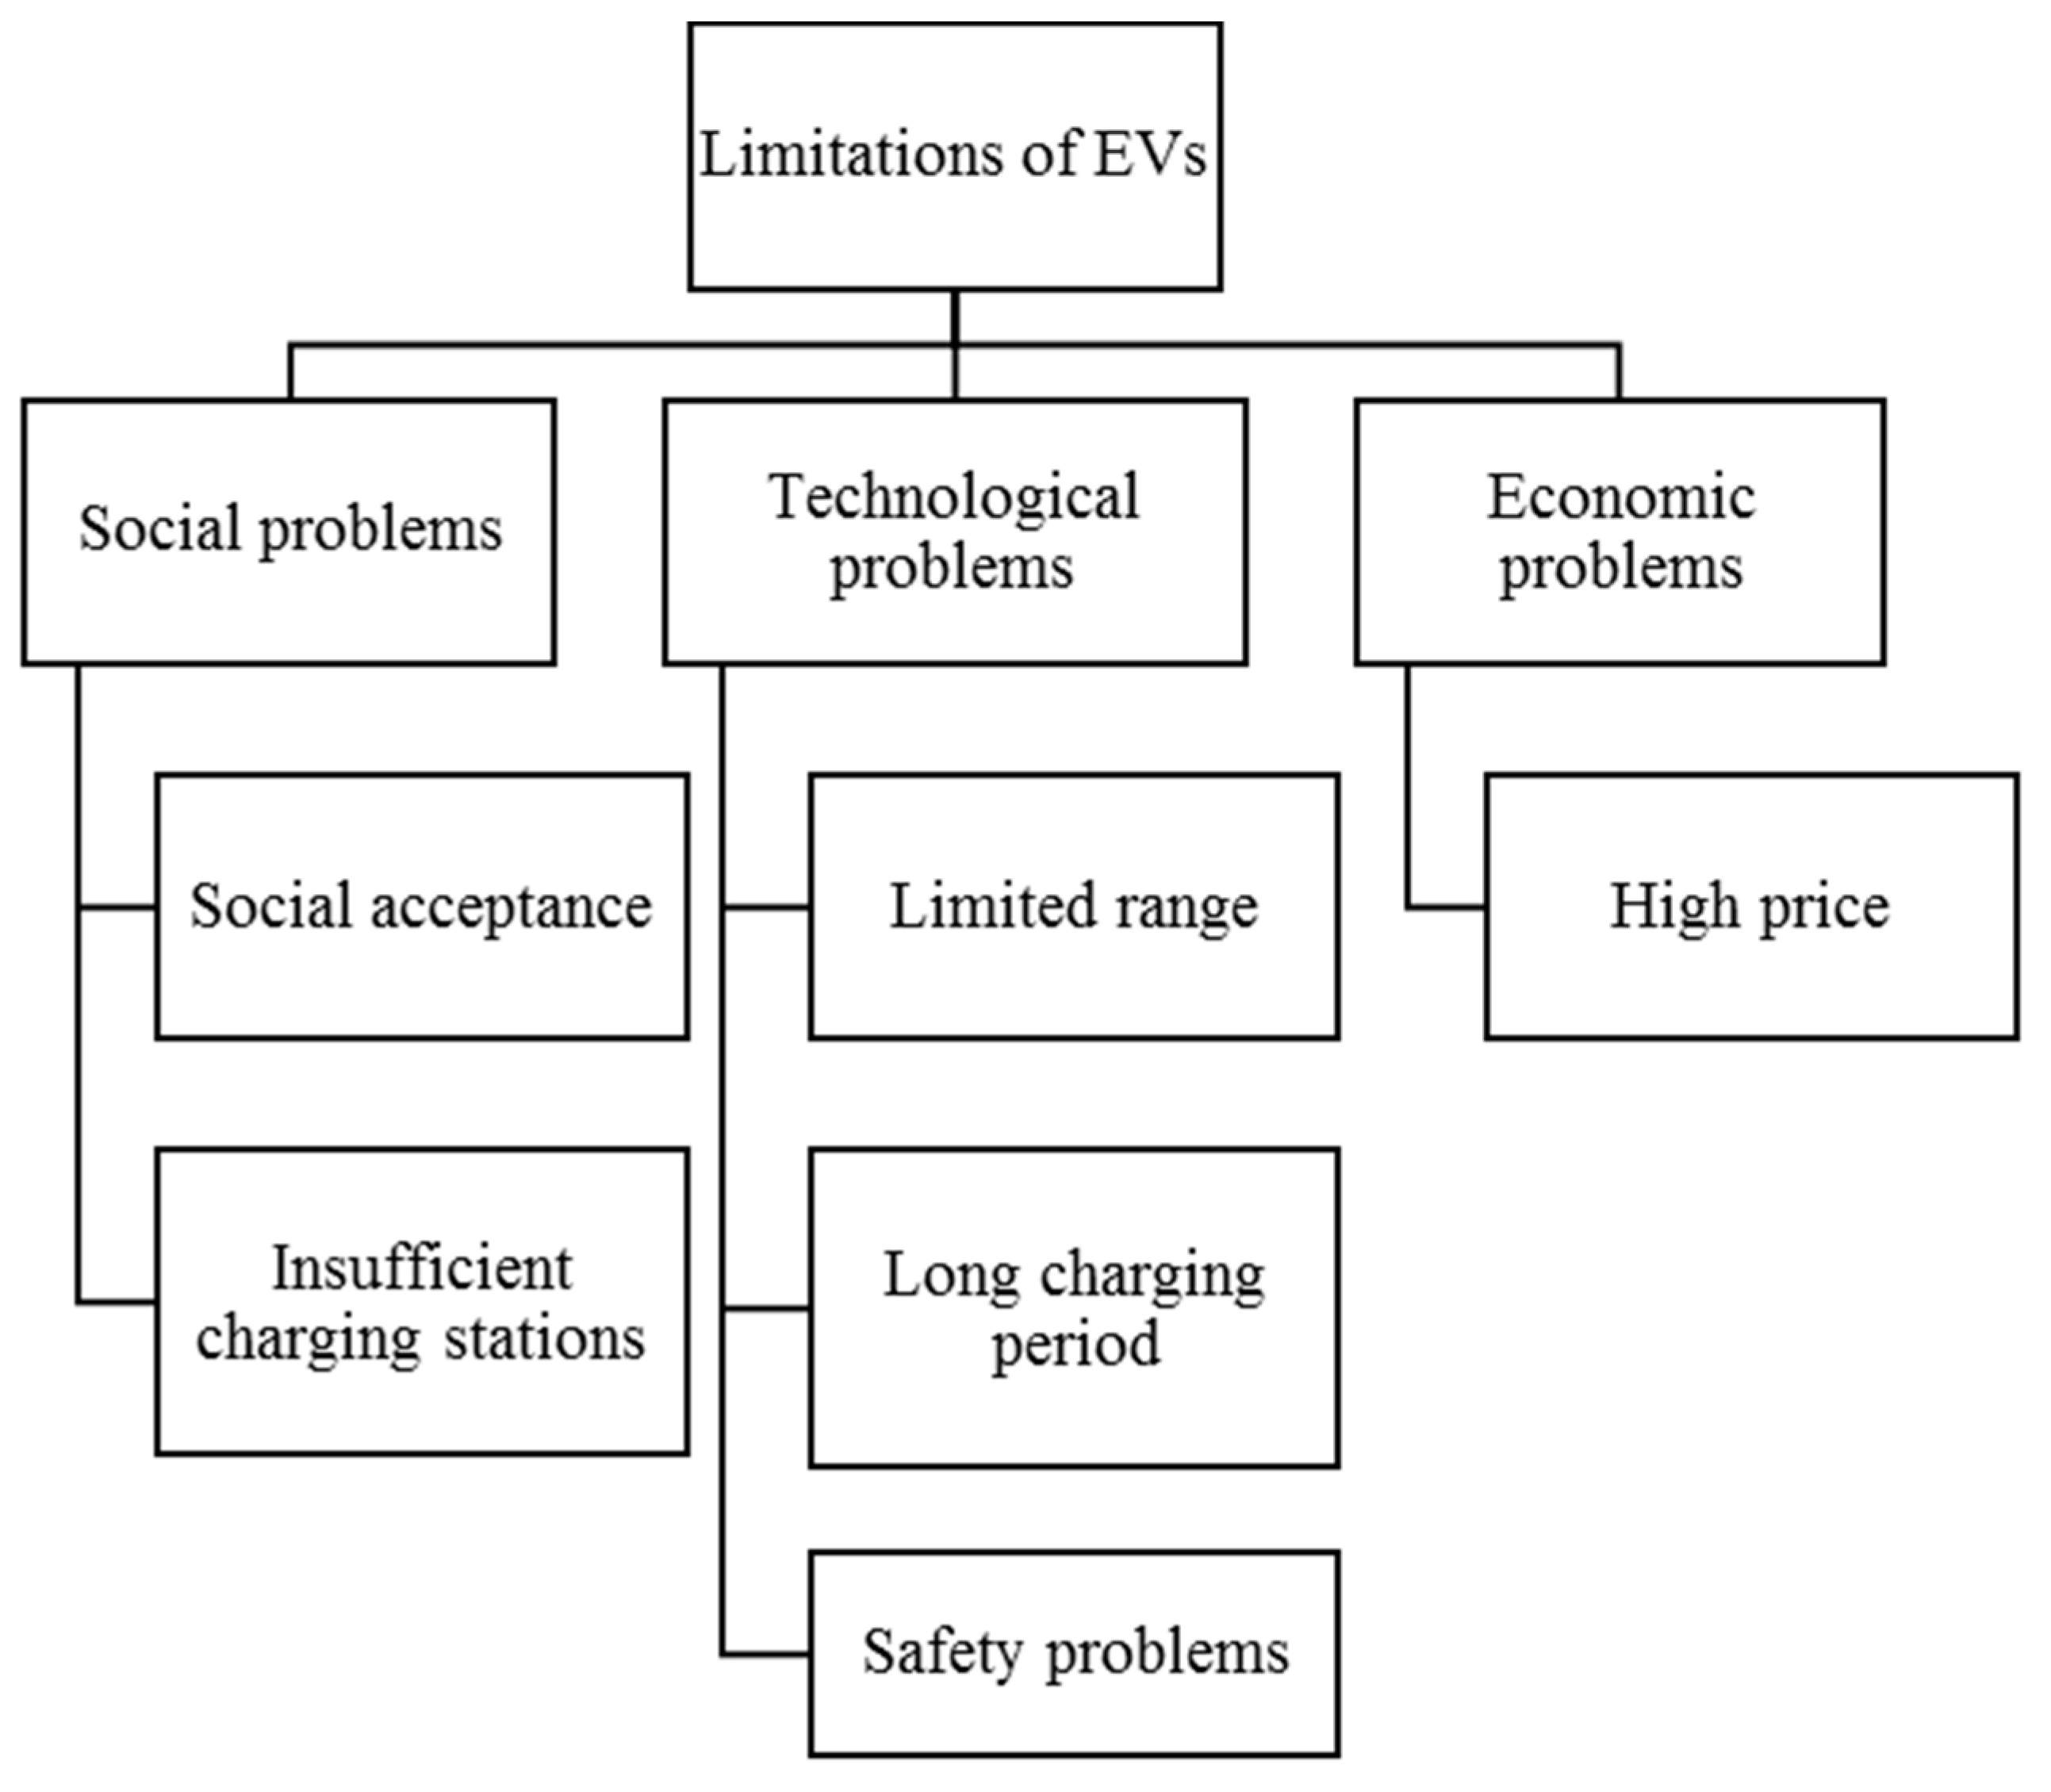 Energies Free Full Text A Comprehensive Study Of Key Electric Zvs Capacitor Charger Circuit Flickr Photo Sharing Vehicle Ev Components Technologies Challenges Impacts And Future Direction